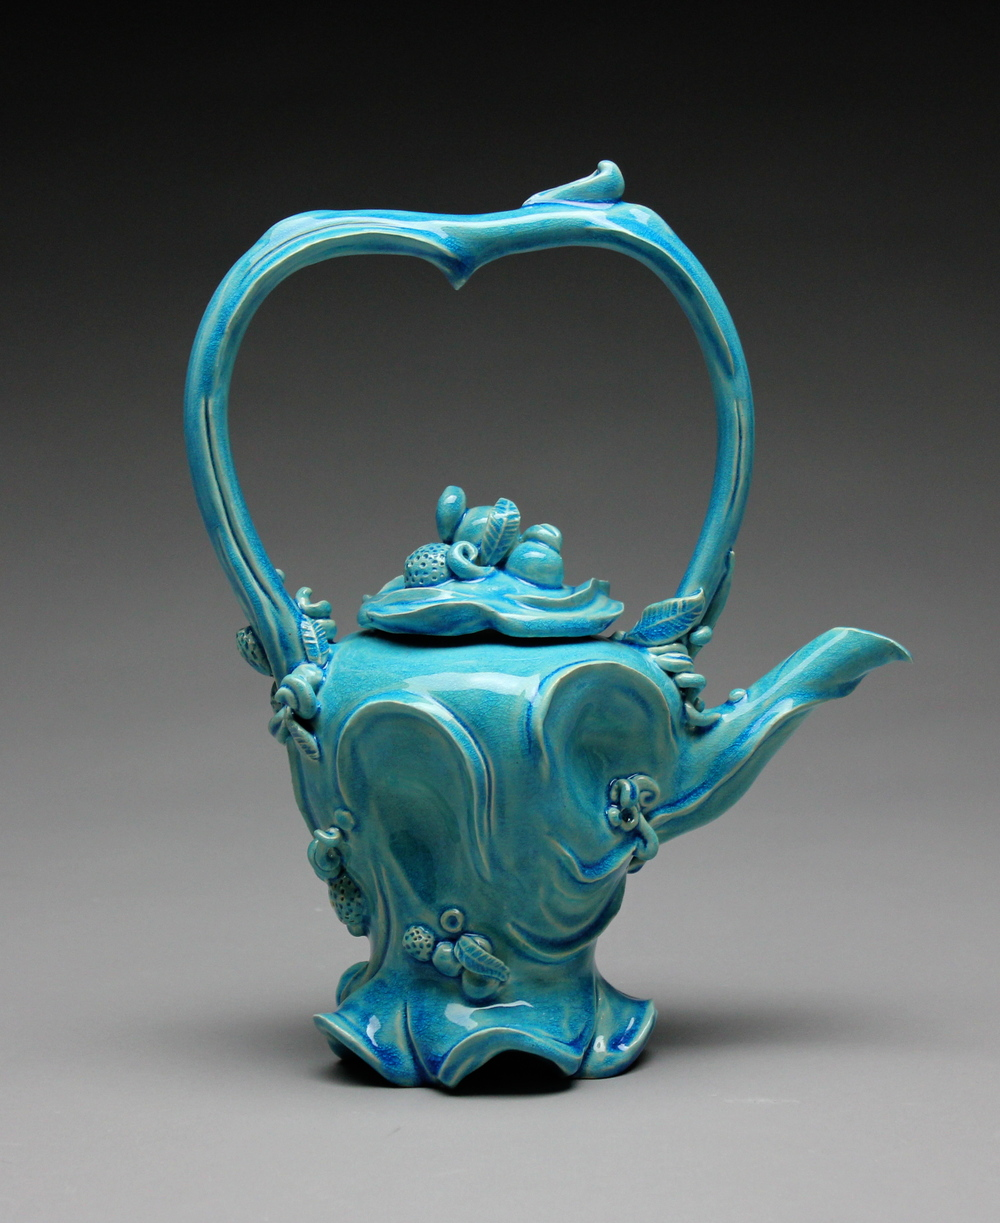 Rhythmic Wave Teapot